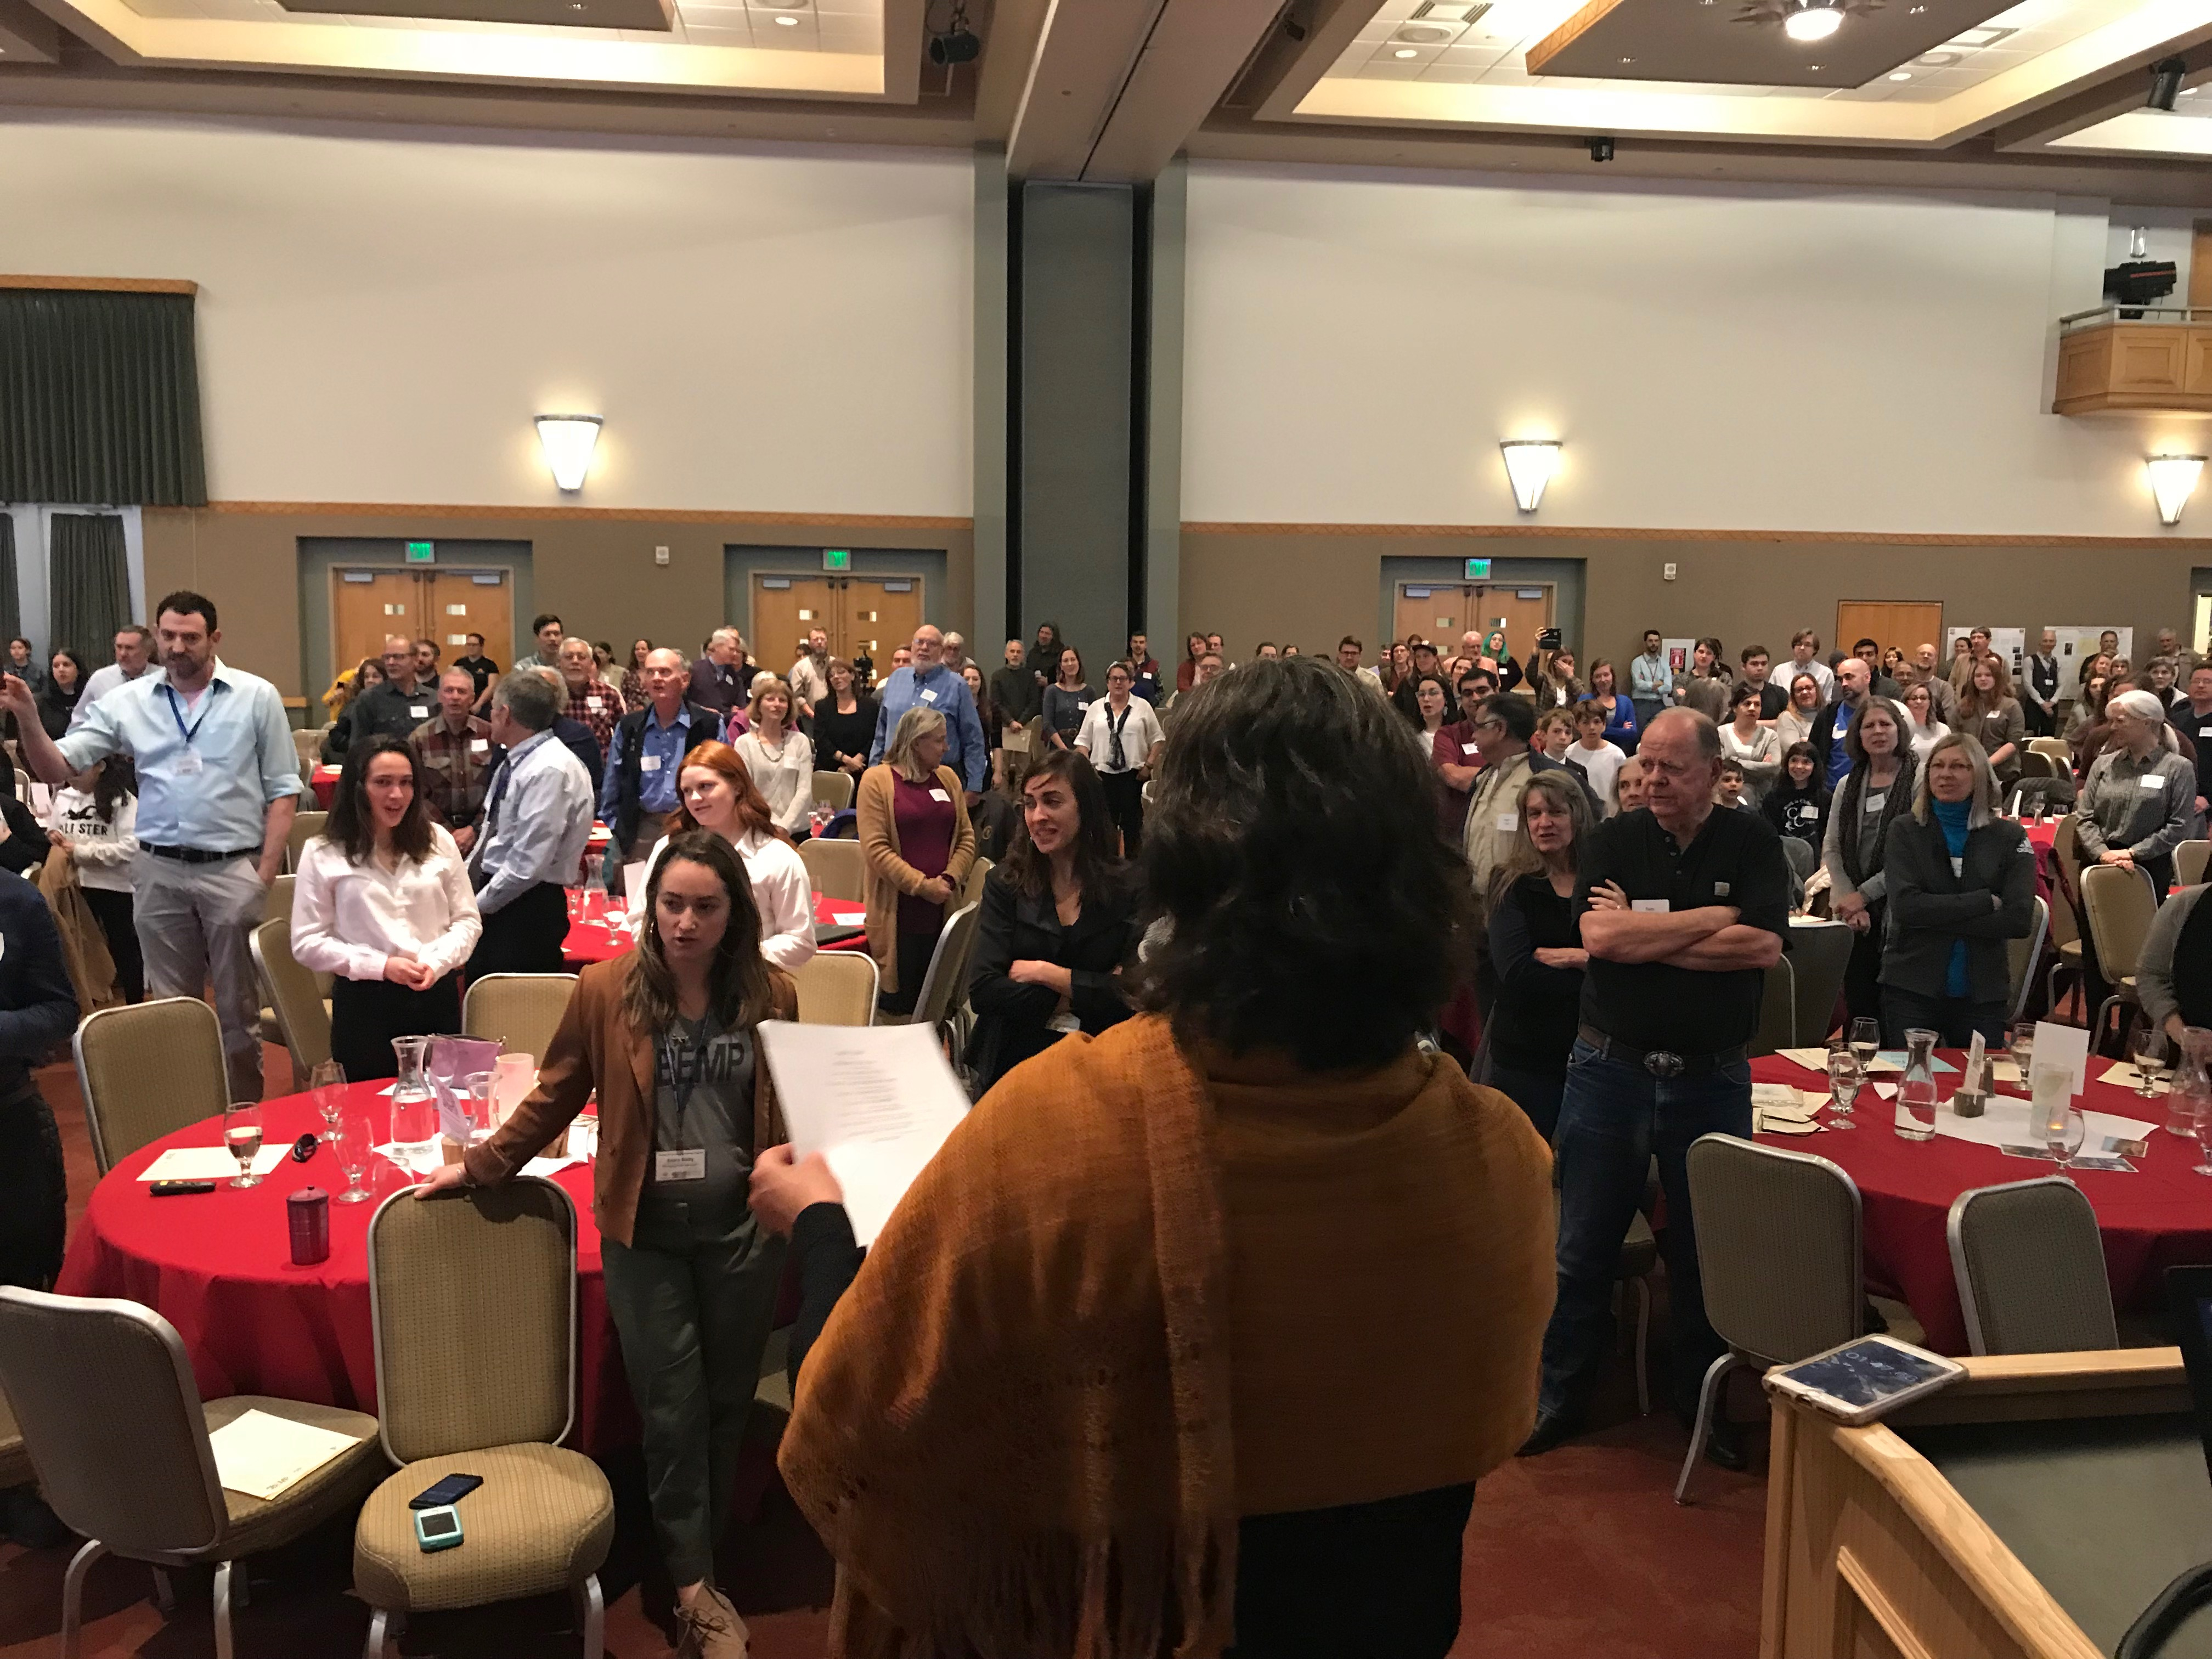 Crawford Symposium attendees participating in a poem with Albuquerque's Poet Laureate, Michelle Otero and Inez Elementary School BASS students.